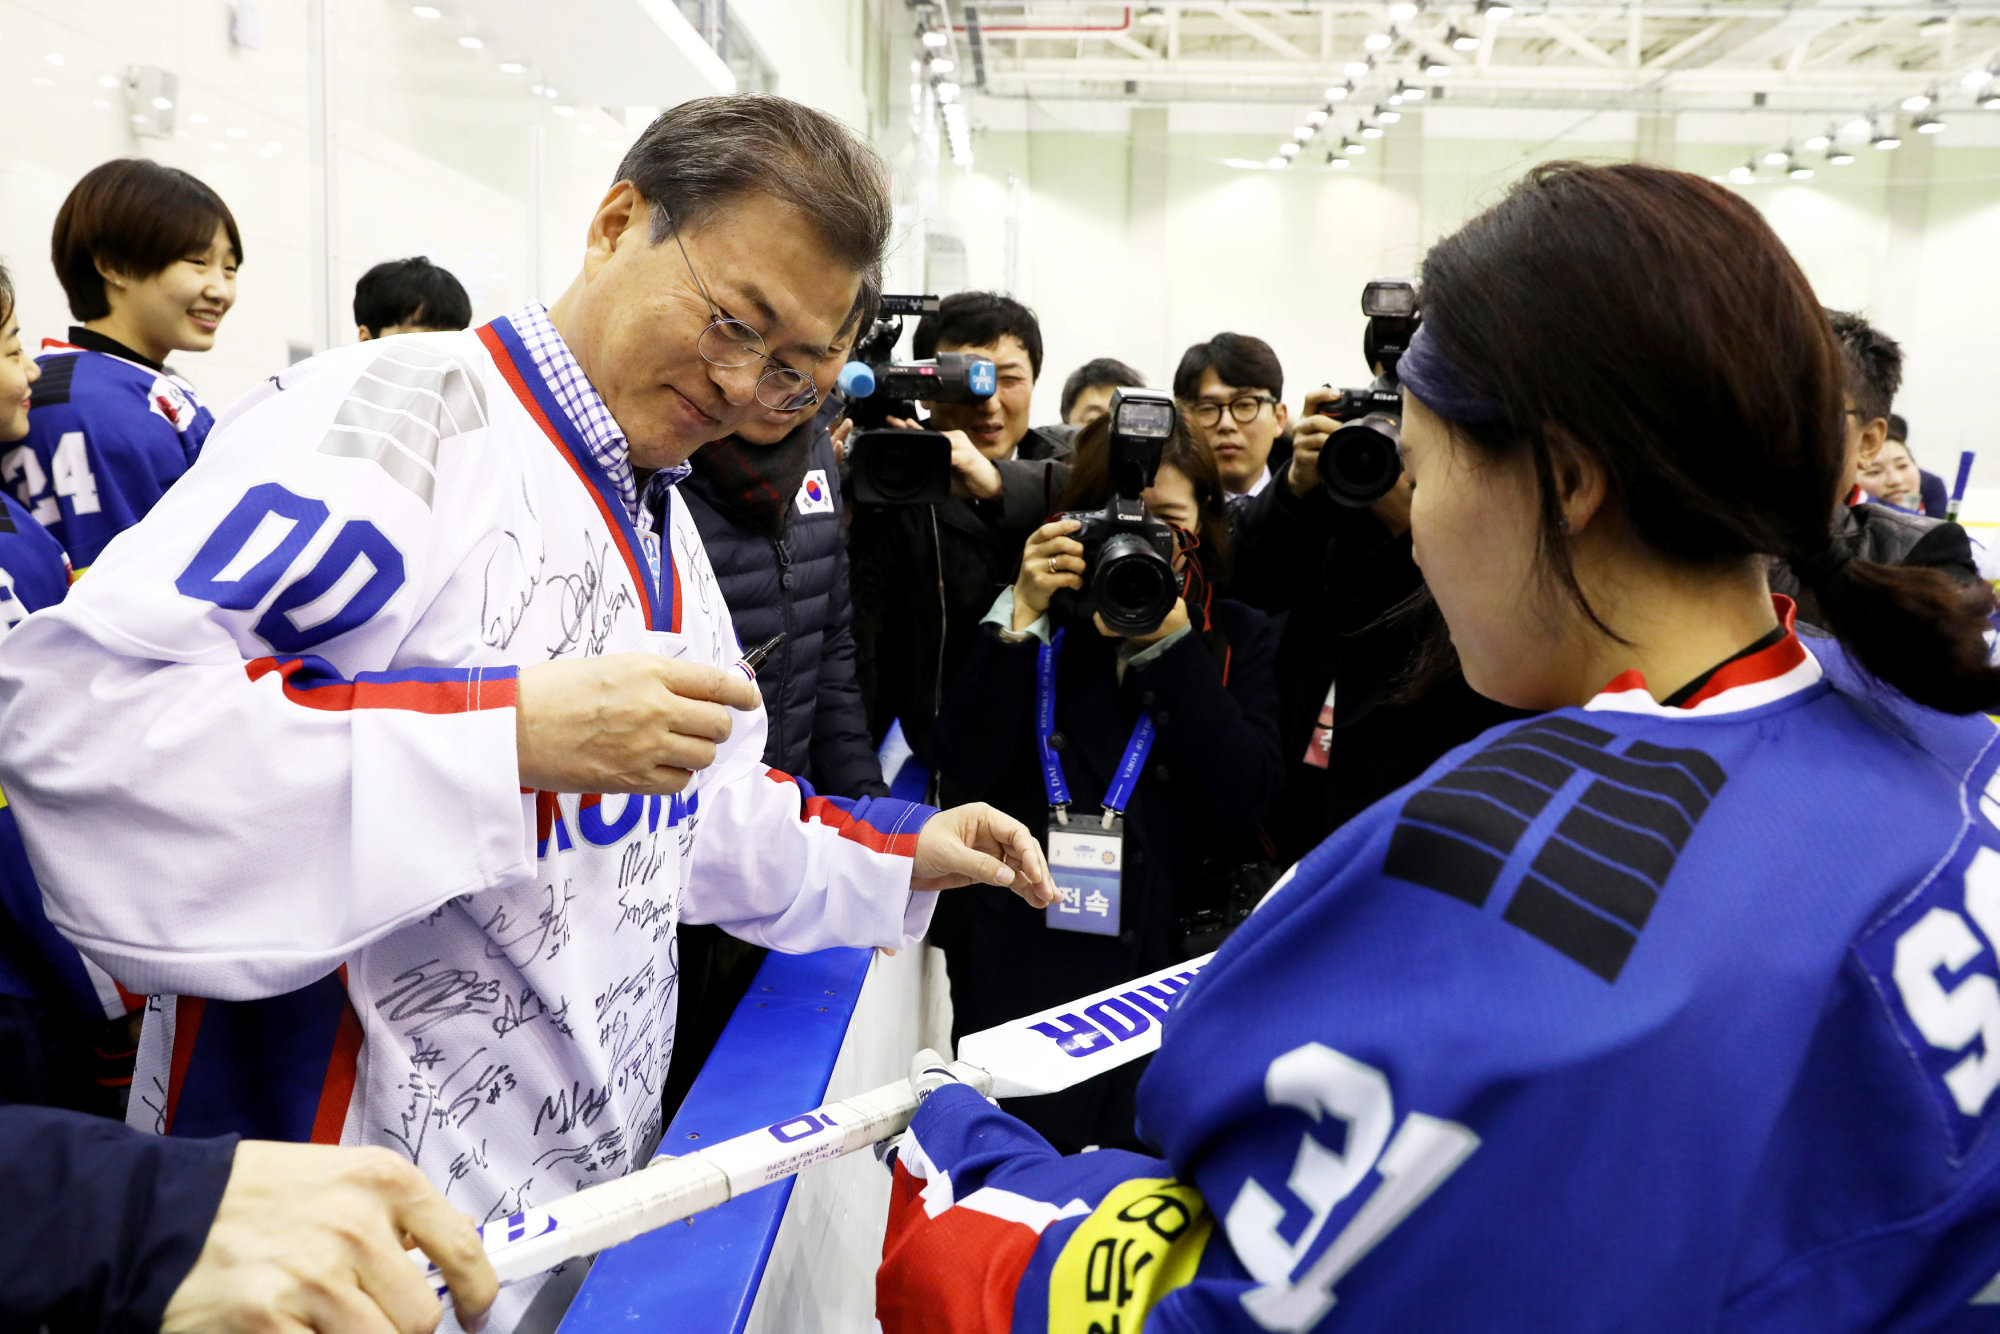 South Korean President Moon Jae-in signs an autograph Wednesday on an ice hockey stick during his visit to Jincheon National Training Center in South Korea. | REUTERS